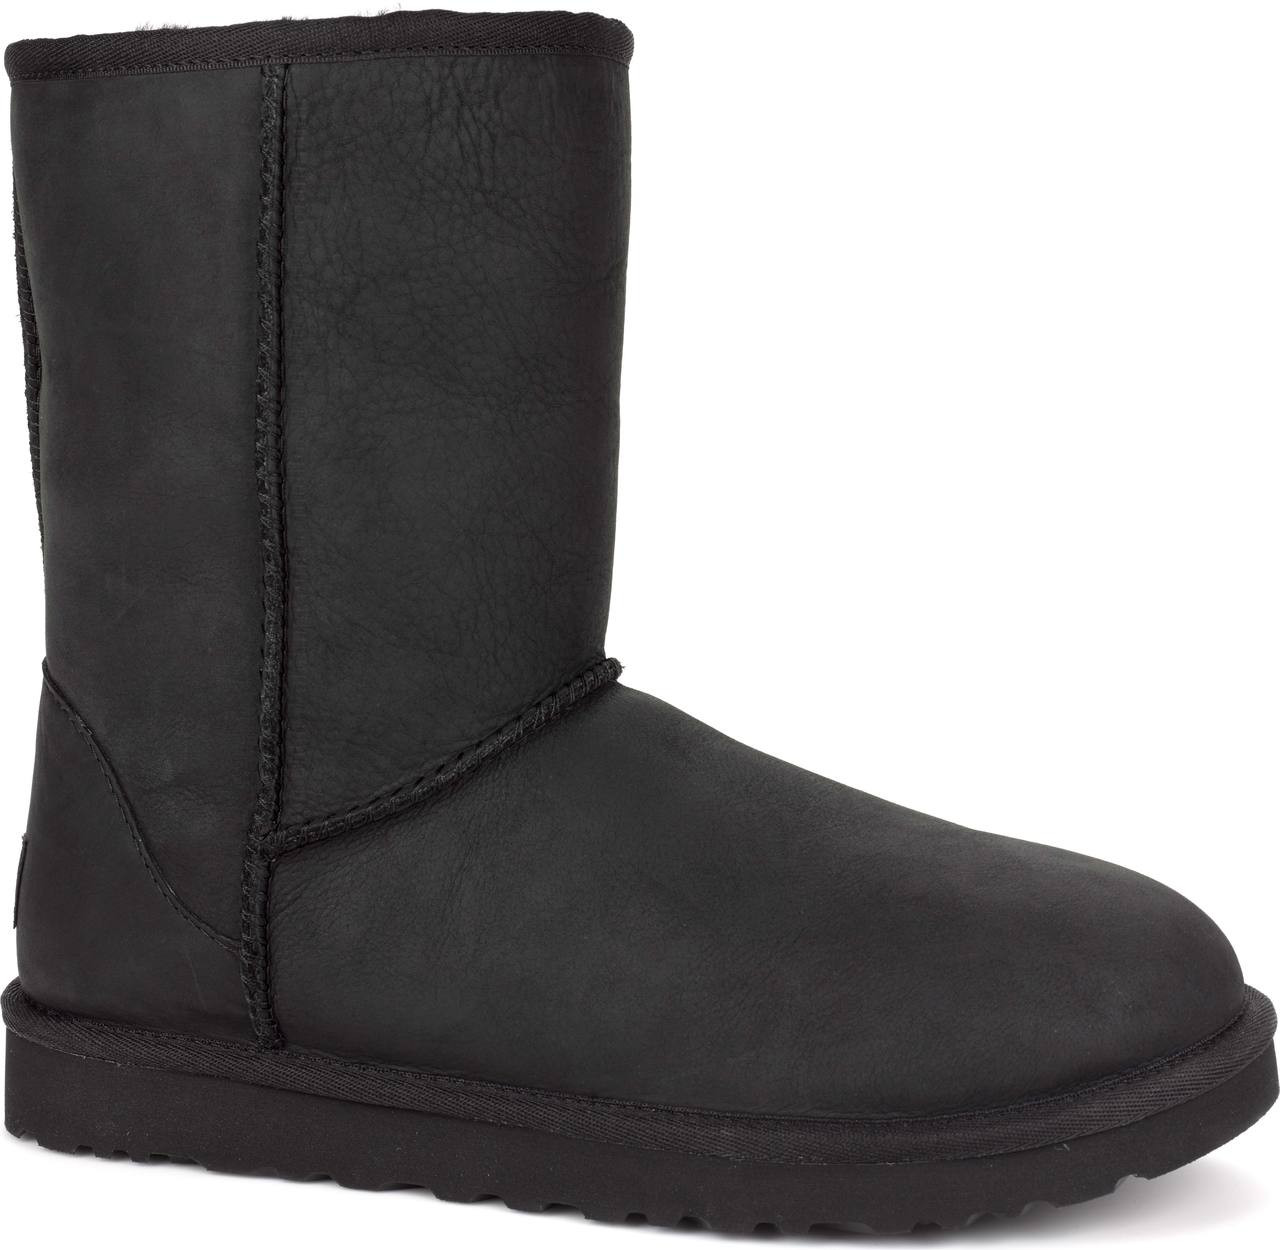 uggs boots for women classic short nz